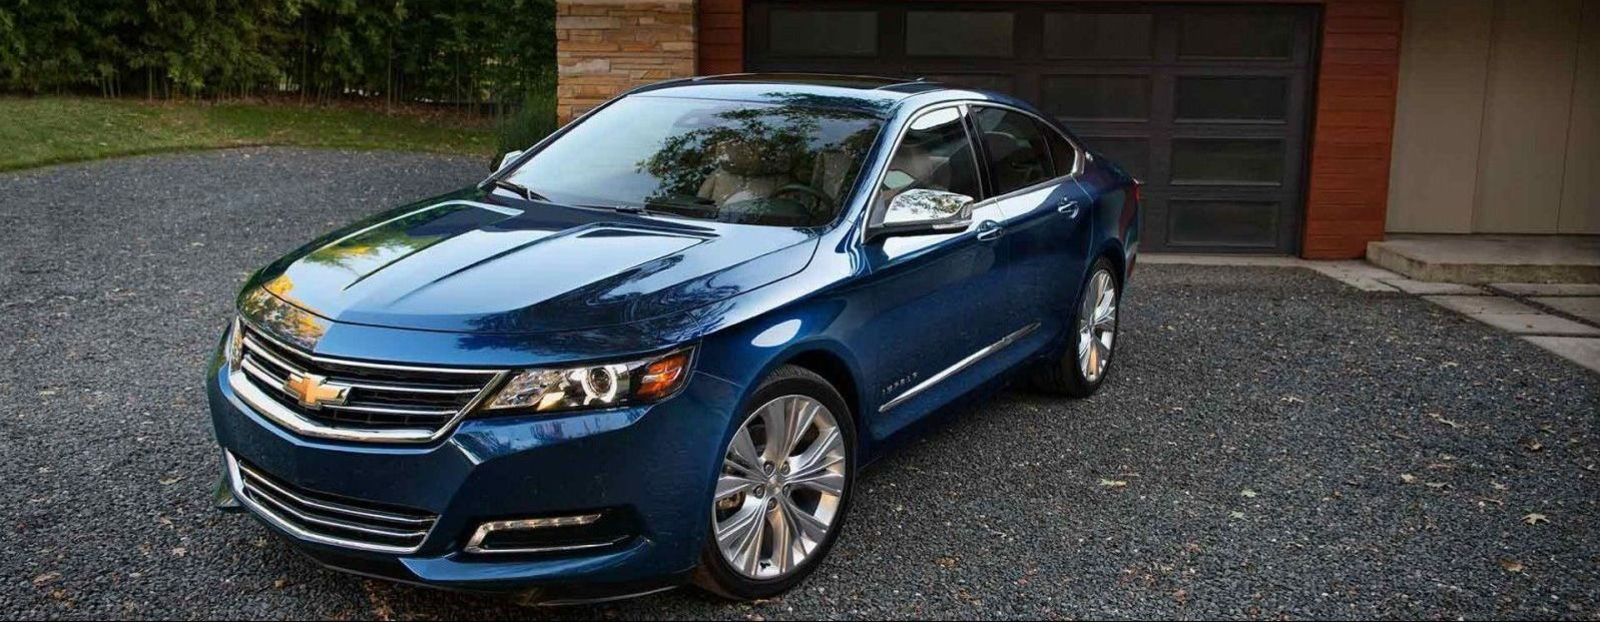 Albany 2017 new chevrolet malibu vehicles for sale autos for Primasing motors lebanon or